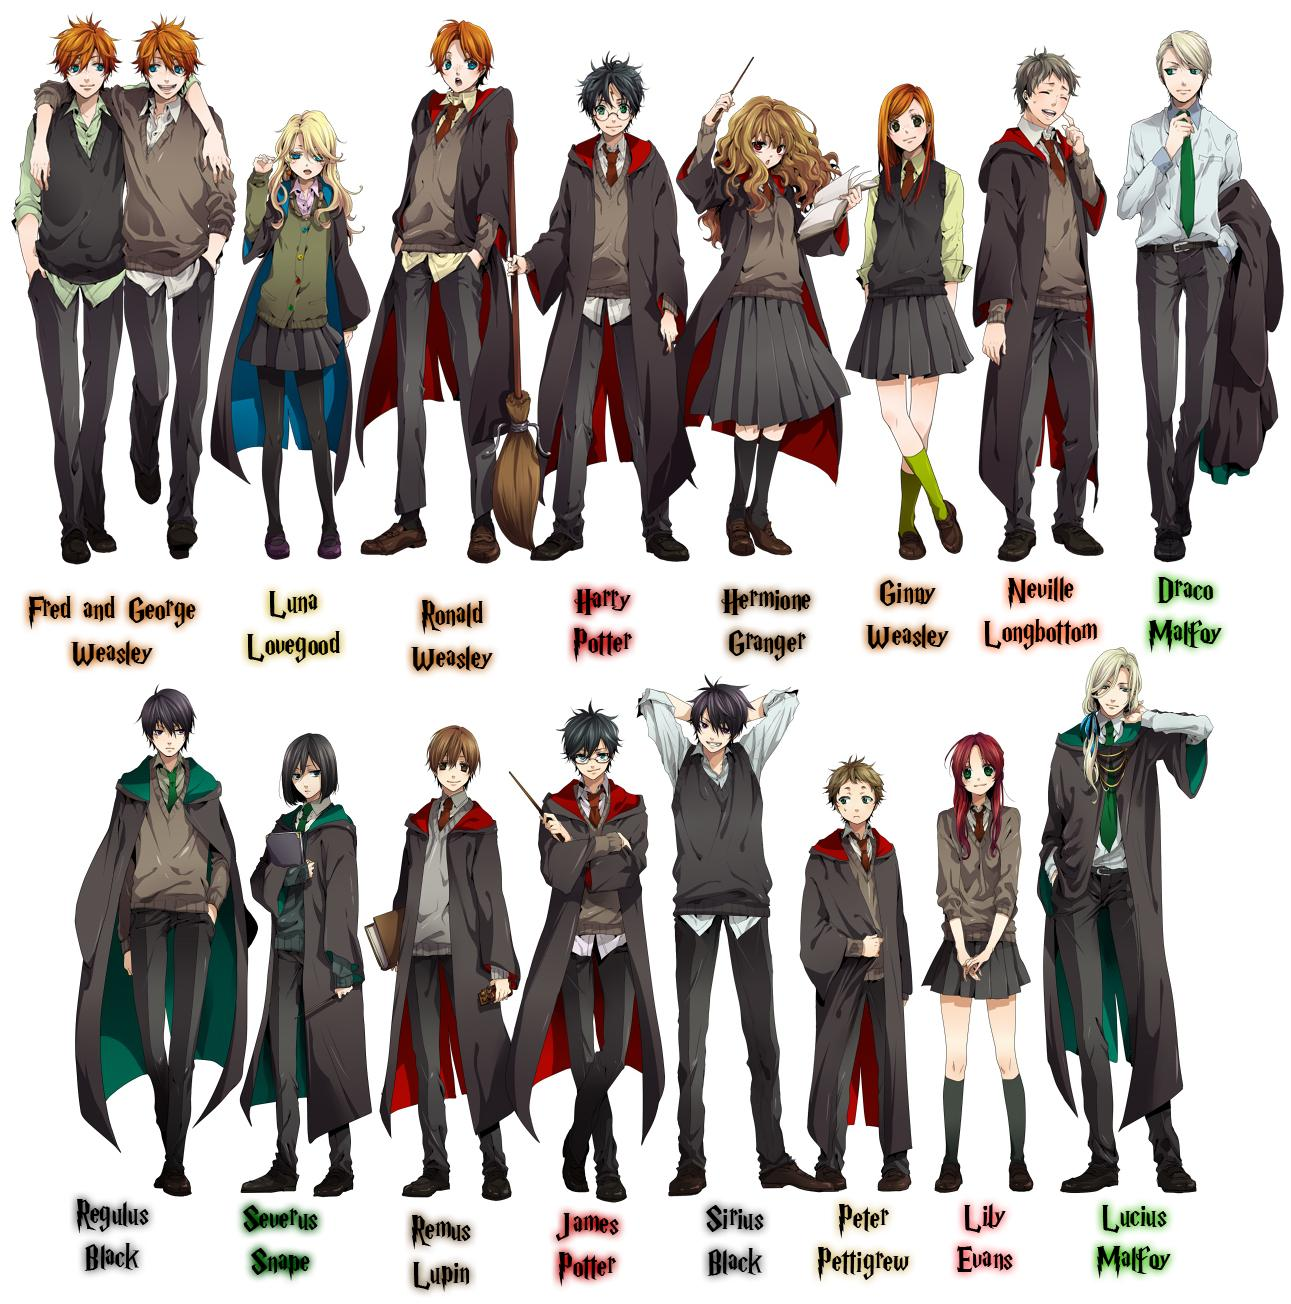 Harry Potter Characters Drawn Anime Style This Is It